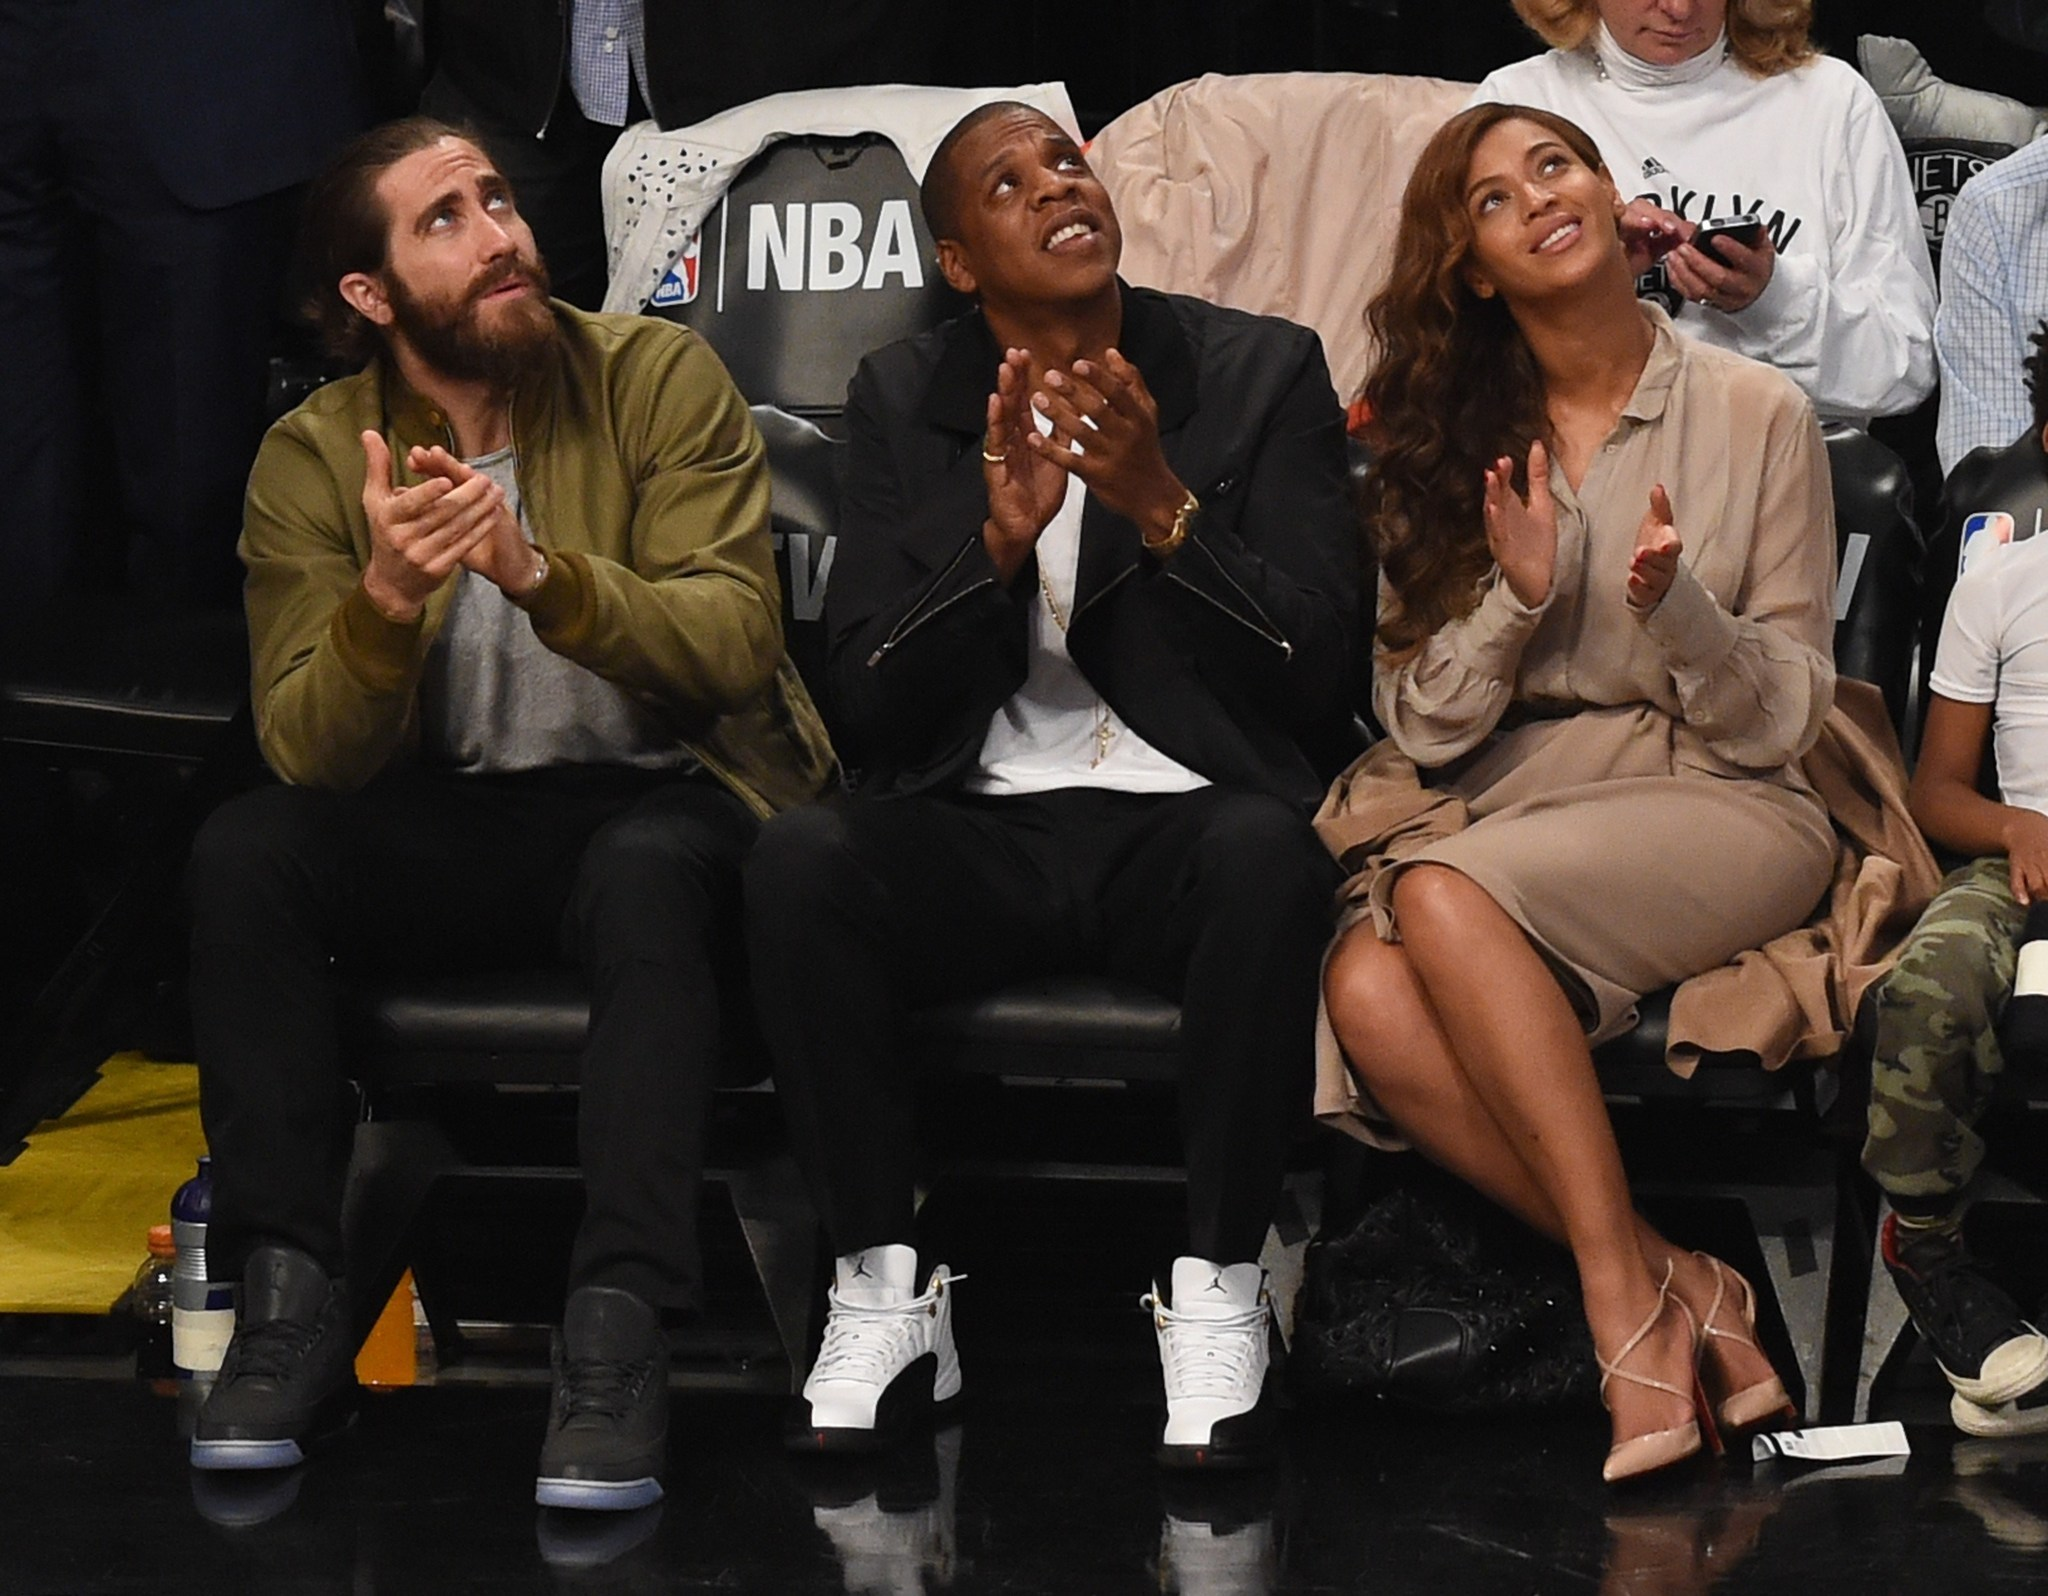 Celebs spotted at Miami Heat games - Jake Gyllenhaa, Jay Z and Beyonce